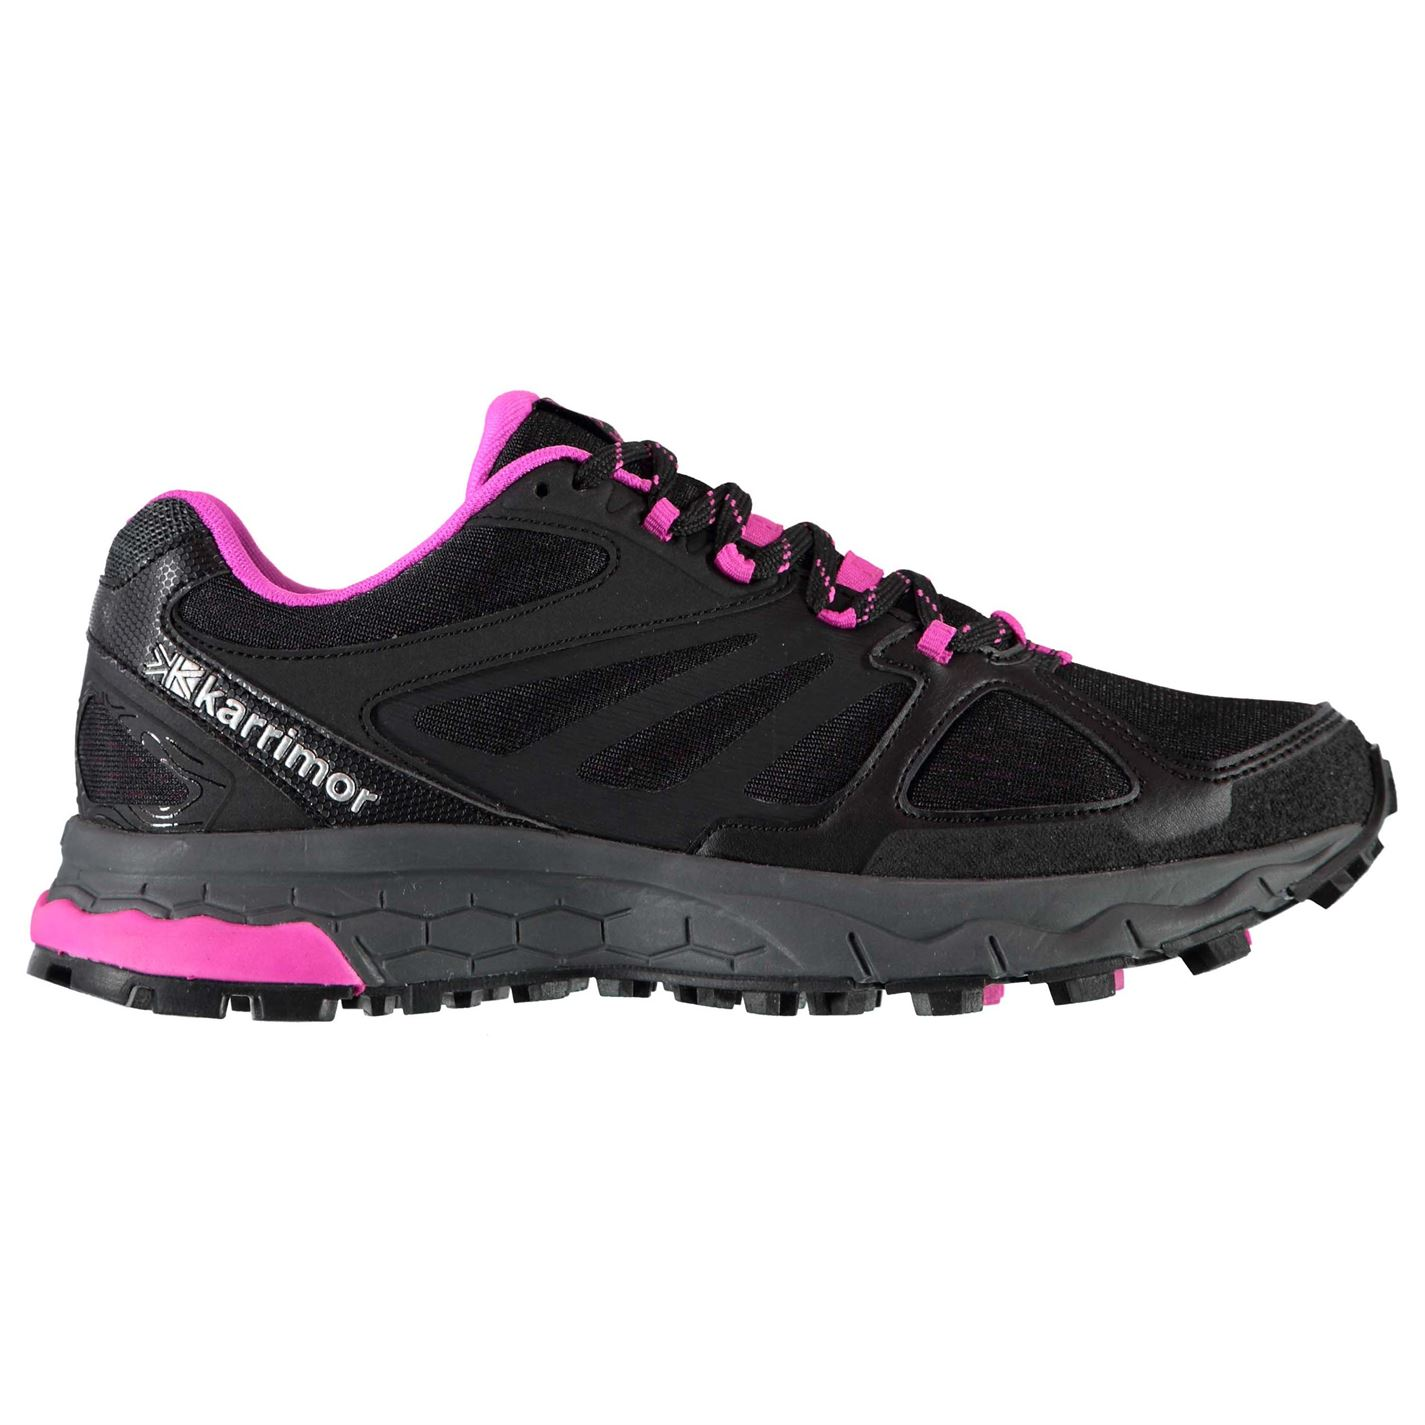 Tenisky Karrimor Tempo 5 Ladies Trail Running Shoes - Glami.cz 9102923135a